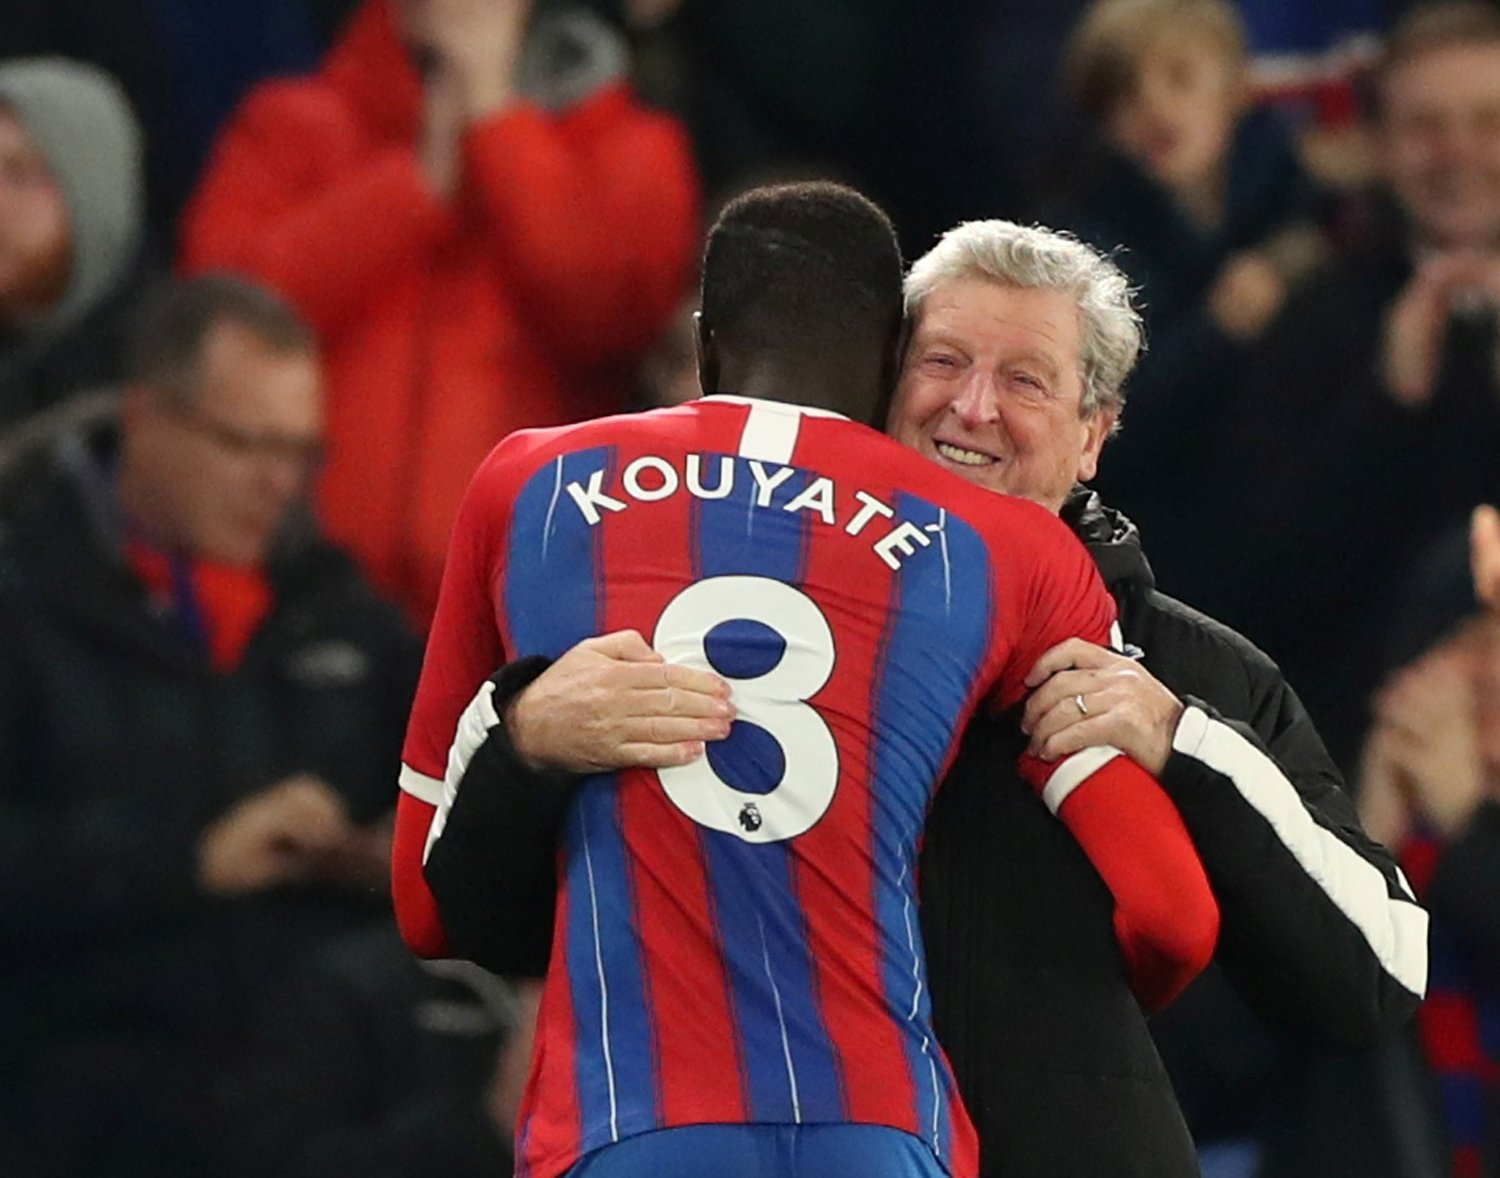 Soccer Football - Premier League - Crystal Palace v AFC Bournemouth - Selhurst Park, London, Britain - December 3, 2019 Crystal Palace manager Roy Hodgson celebrates with Cheikhou Kouyate after the match REUTERS/David Klein EDITORIAL USE ONLY. No use with unauthorized audio, video, data, fixture lists, club/league logos or